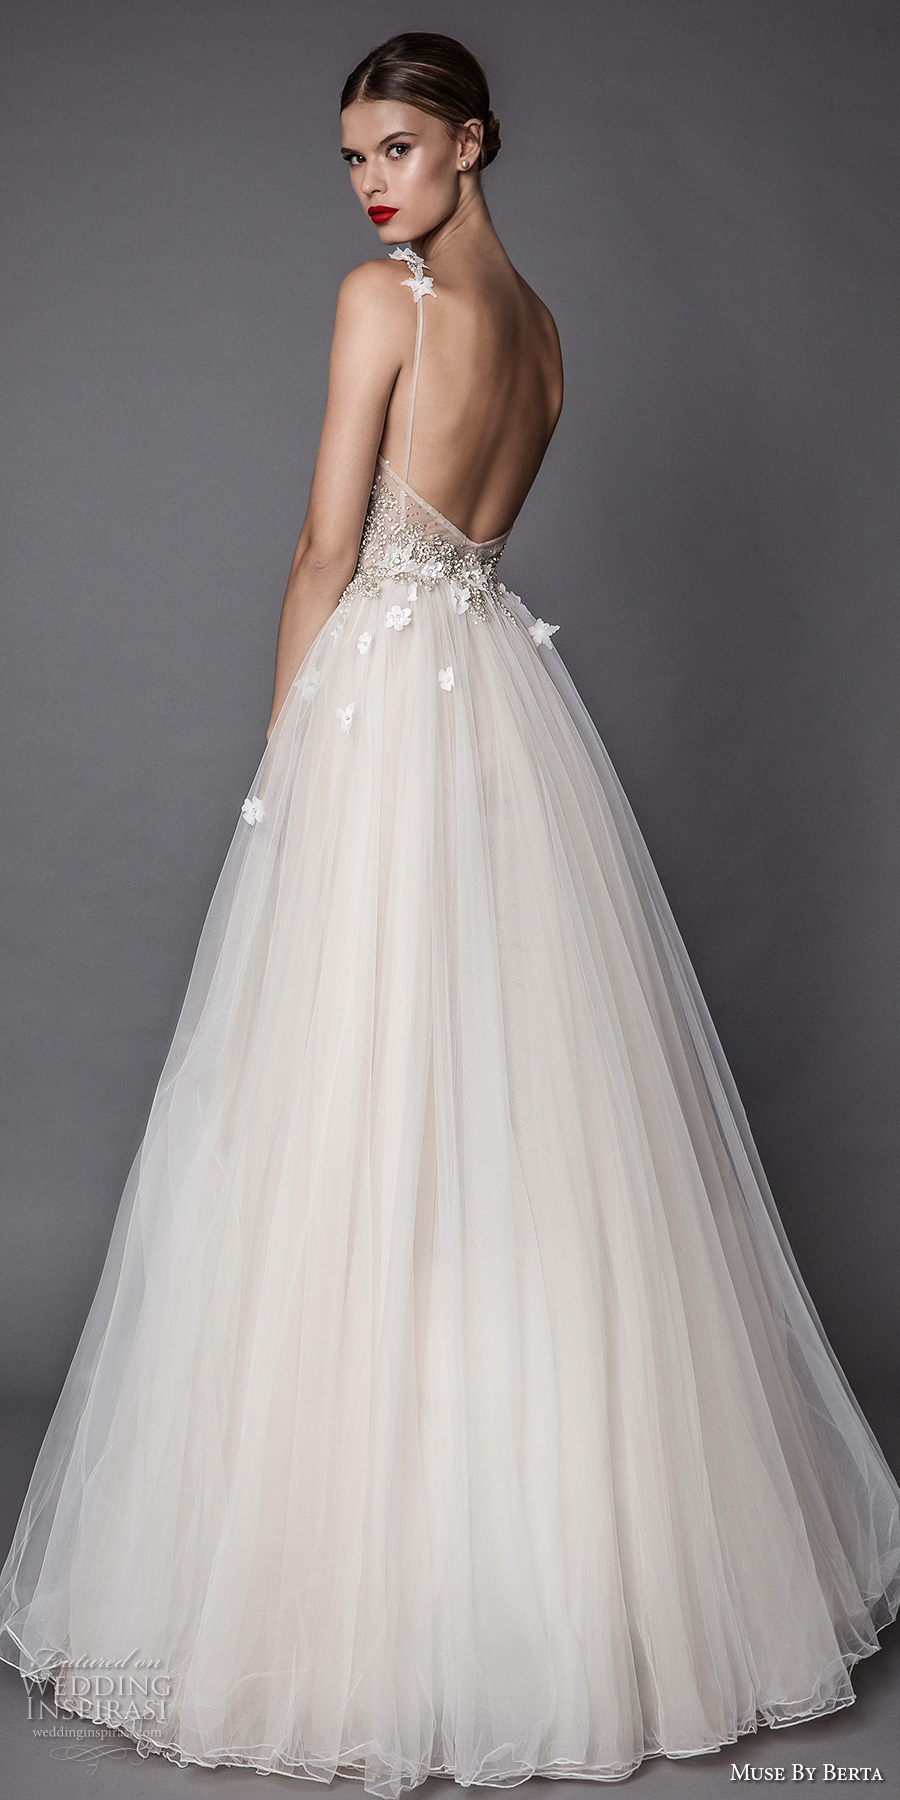 muse berta fall 2017 bridal spagetti strap deep v neck heavily embellished bodice floral applique tulle skirt romantic a line wedding dress open low back sweep train (adel) bv